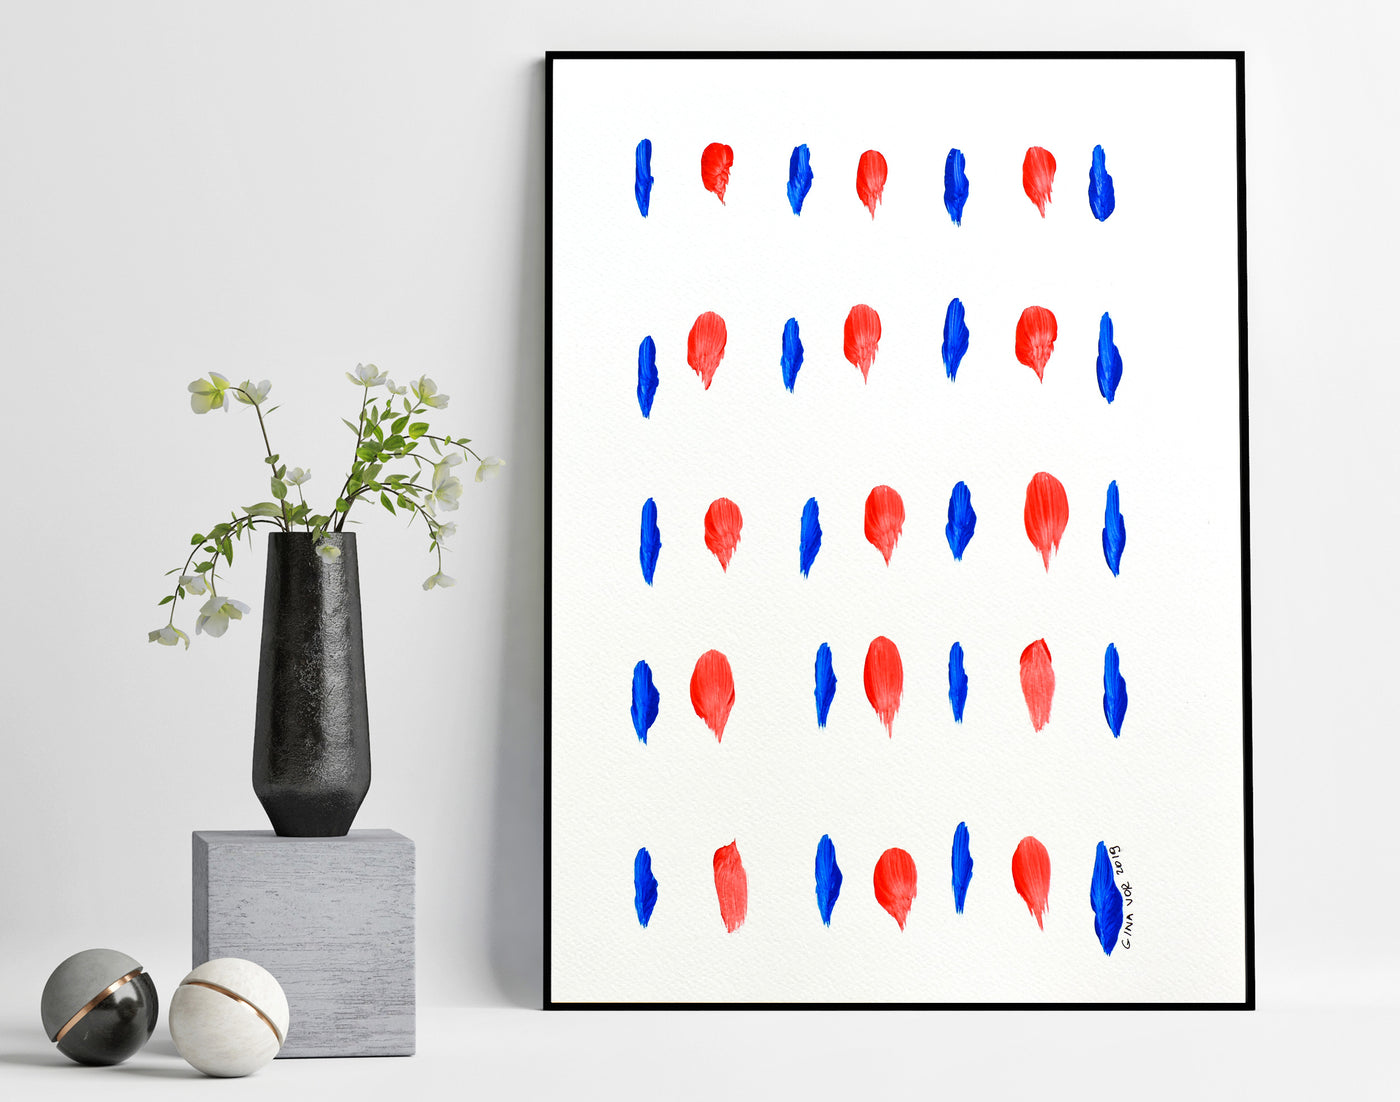 Painting on paper - minimalist abstract art for sale online